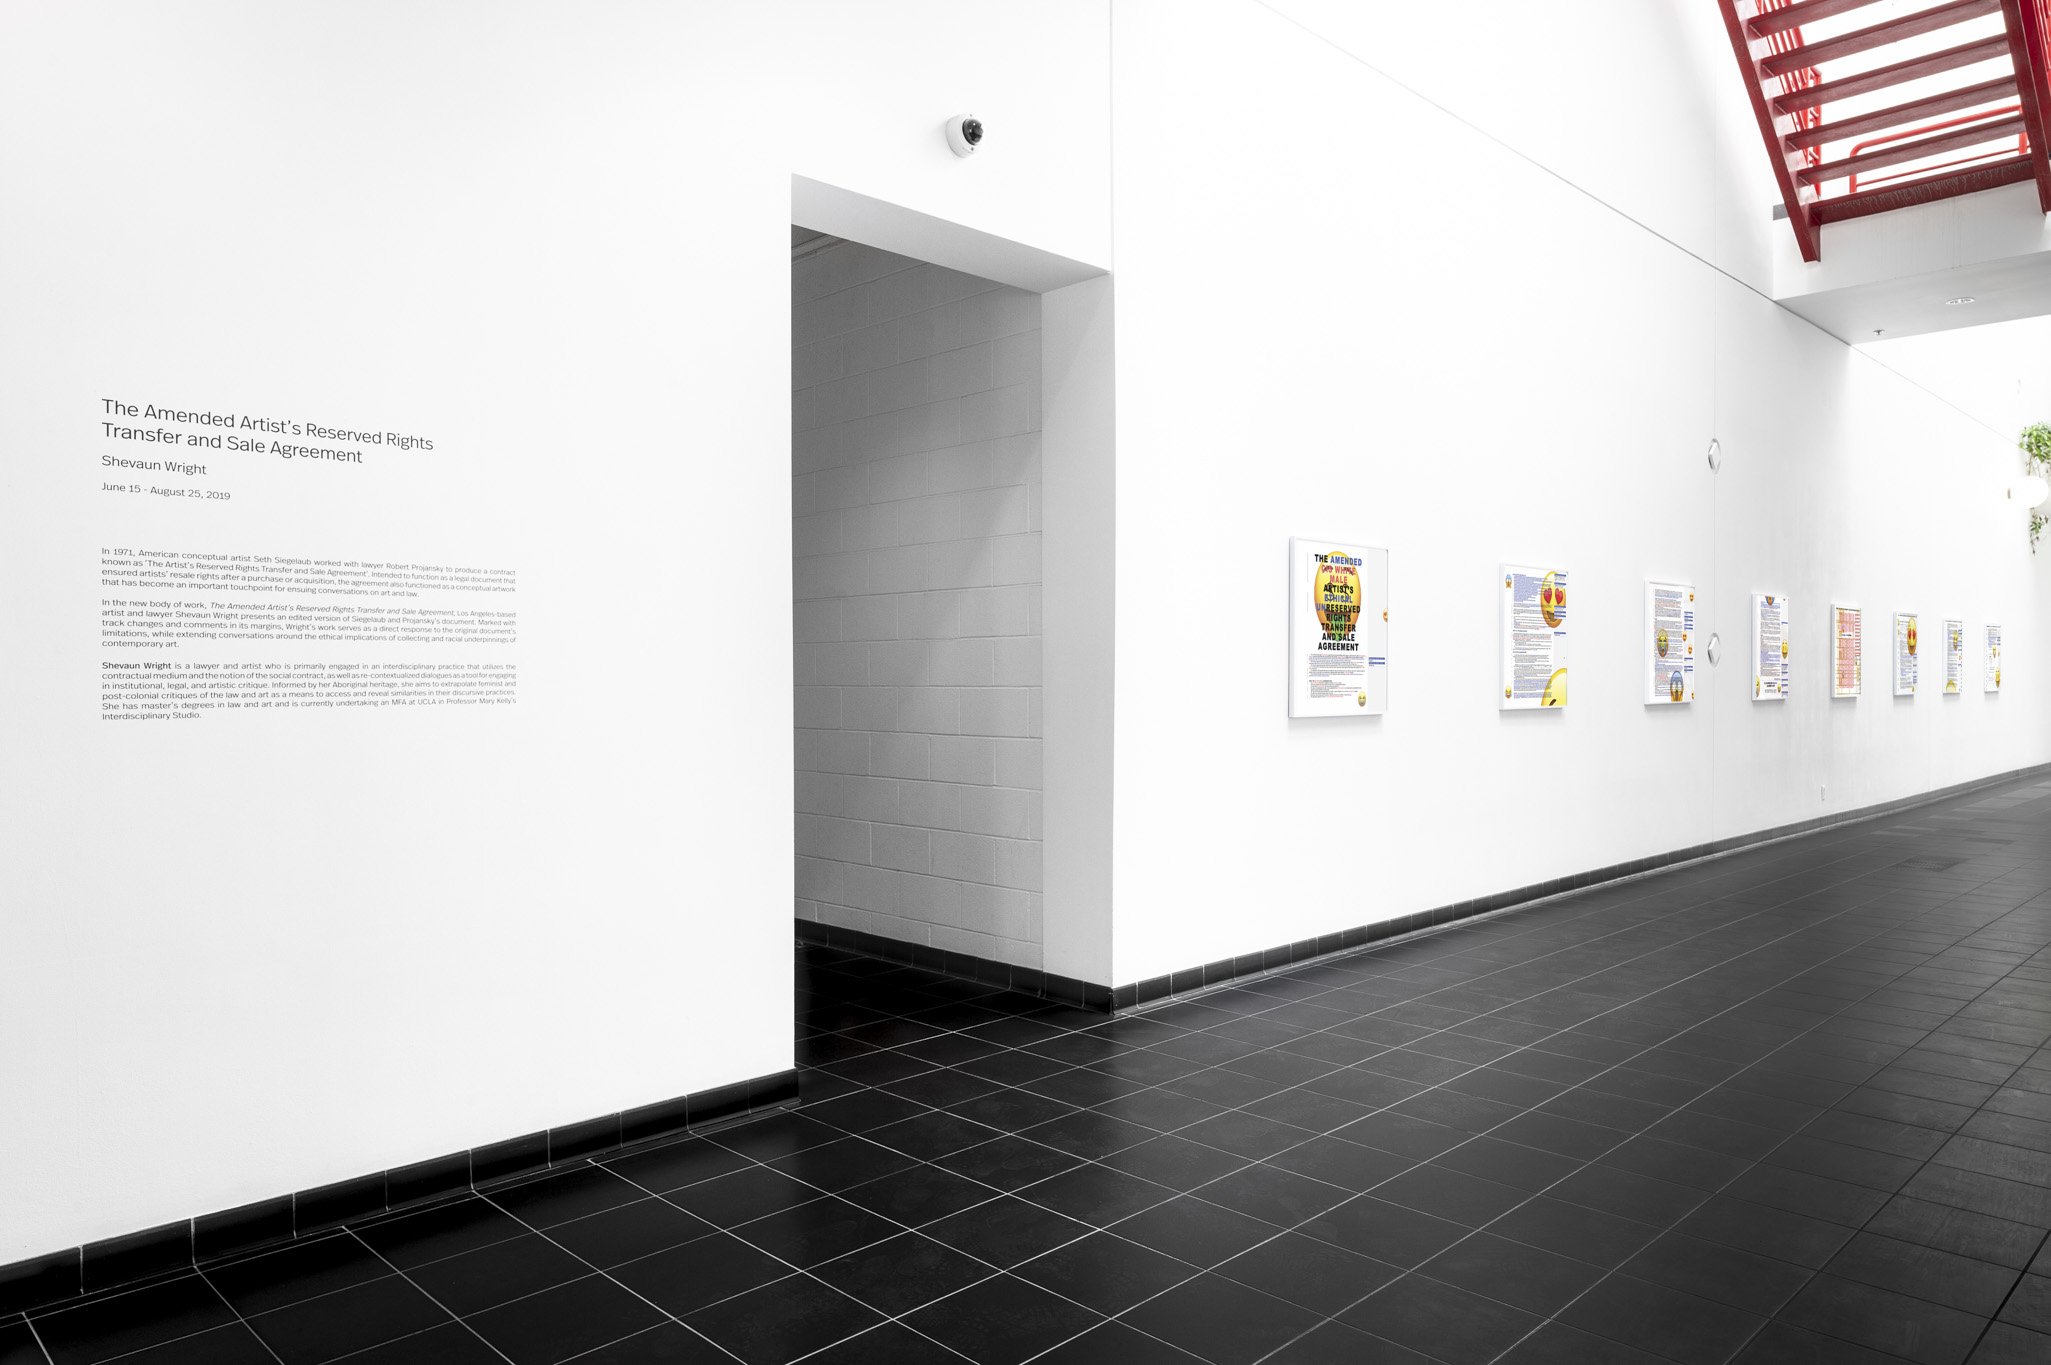 A long white hallway has text about the exhibition and then a series of artworks hung next to it.